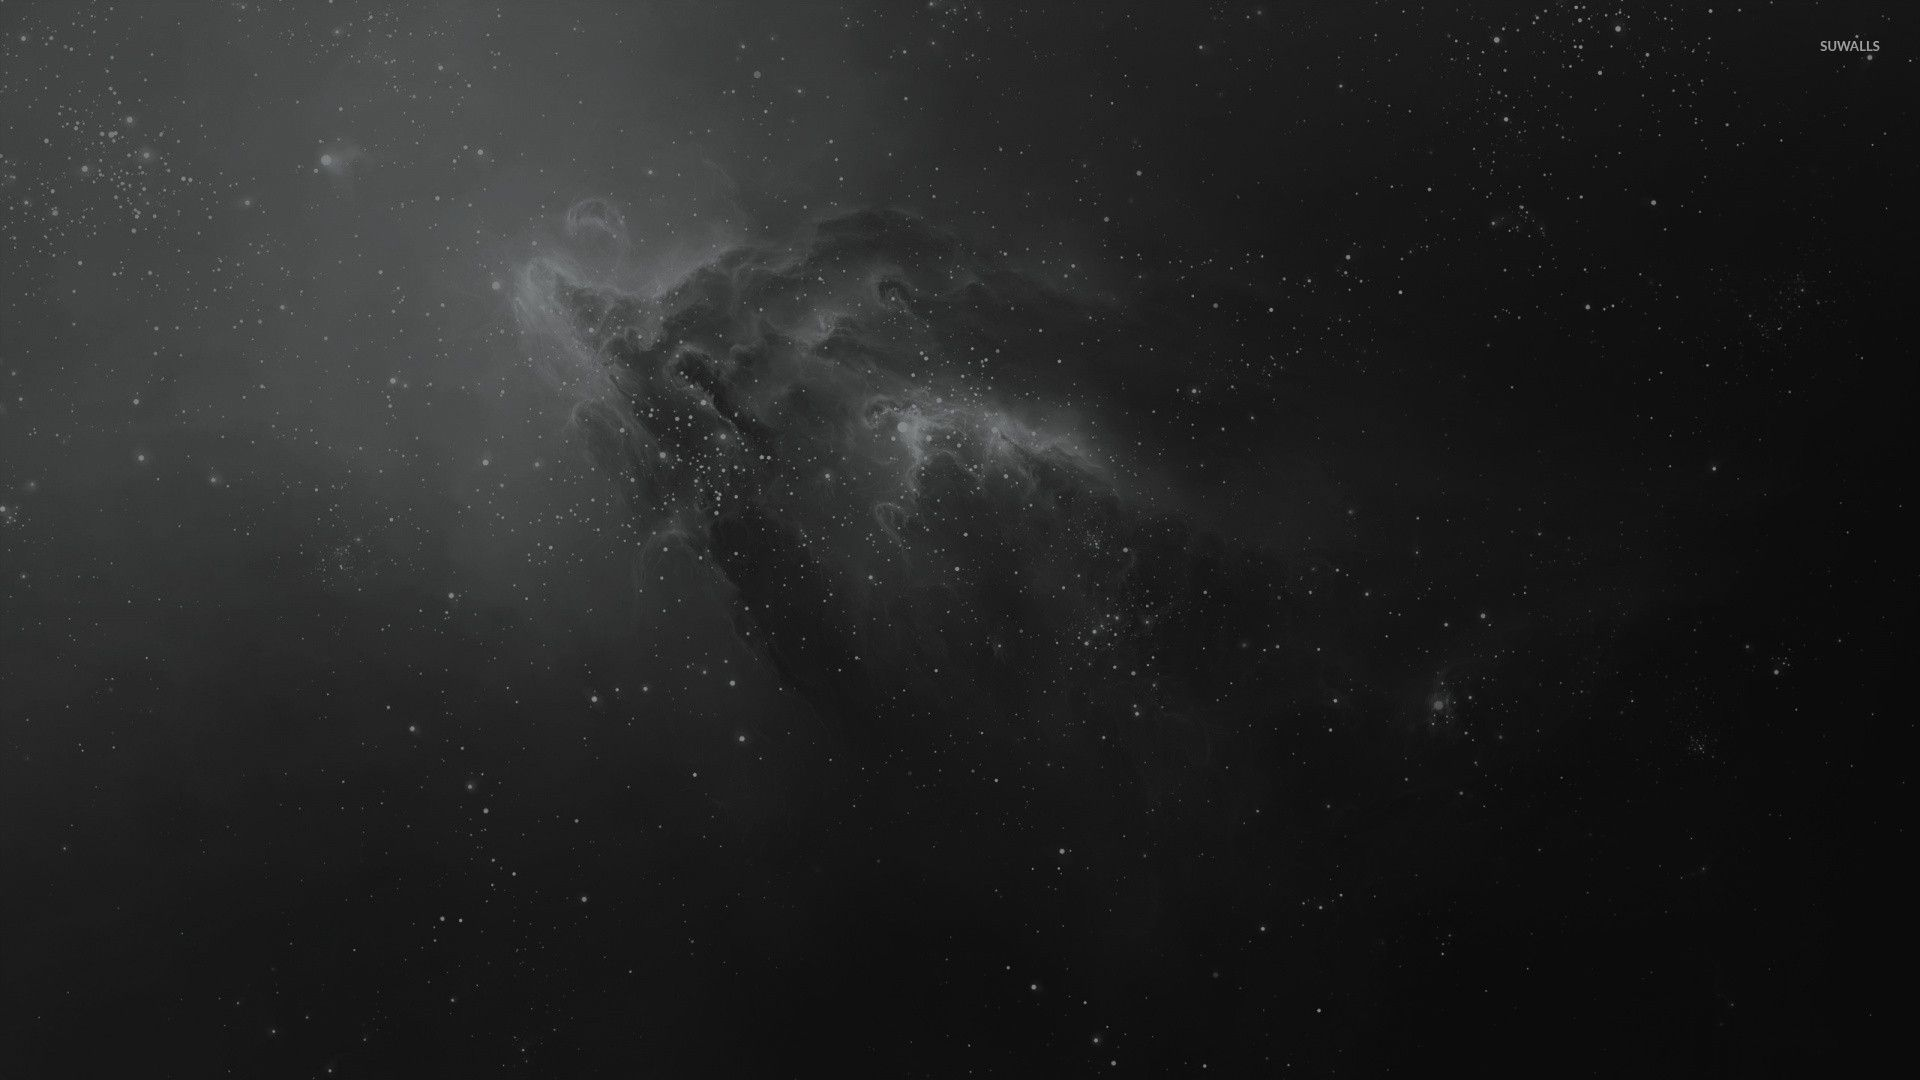 Dark nebula wallpaper - Space wallpapers - #29059